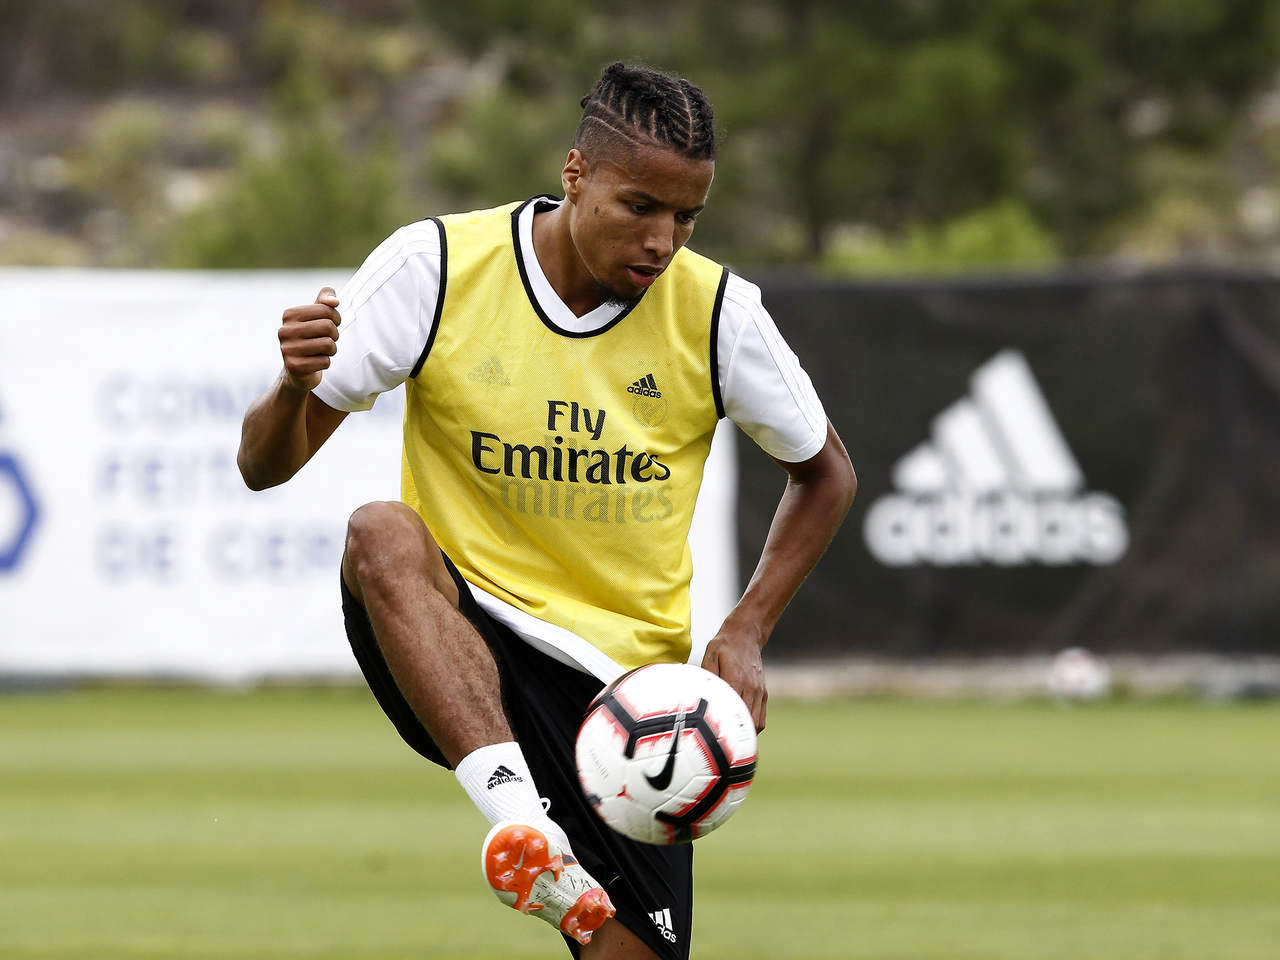 Benfica Confirm Ebuehi Out Of Eagles friendly Vs Ukraine Over Injury